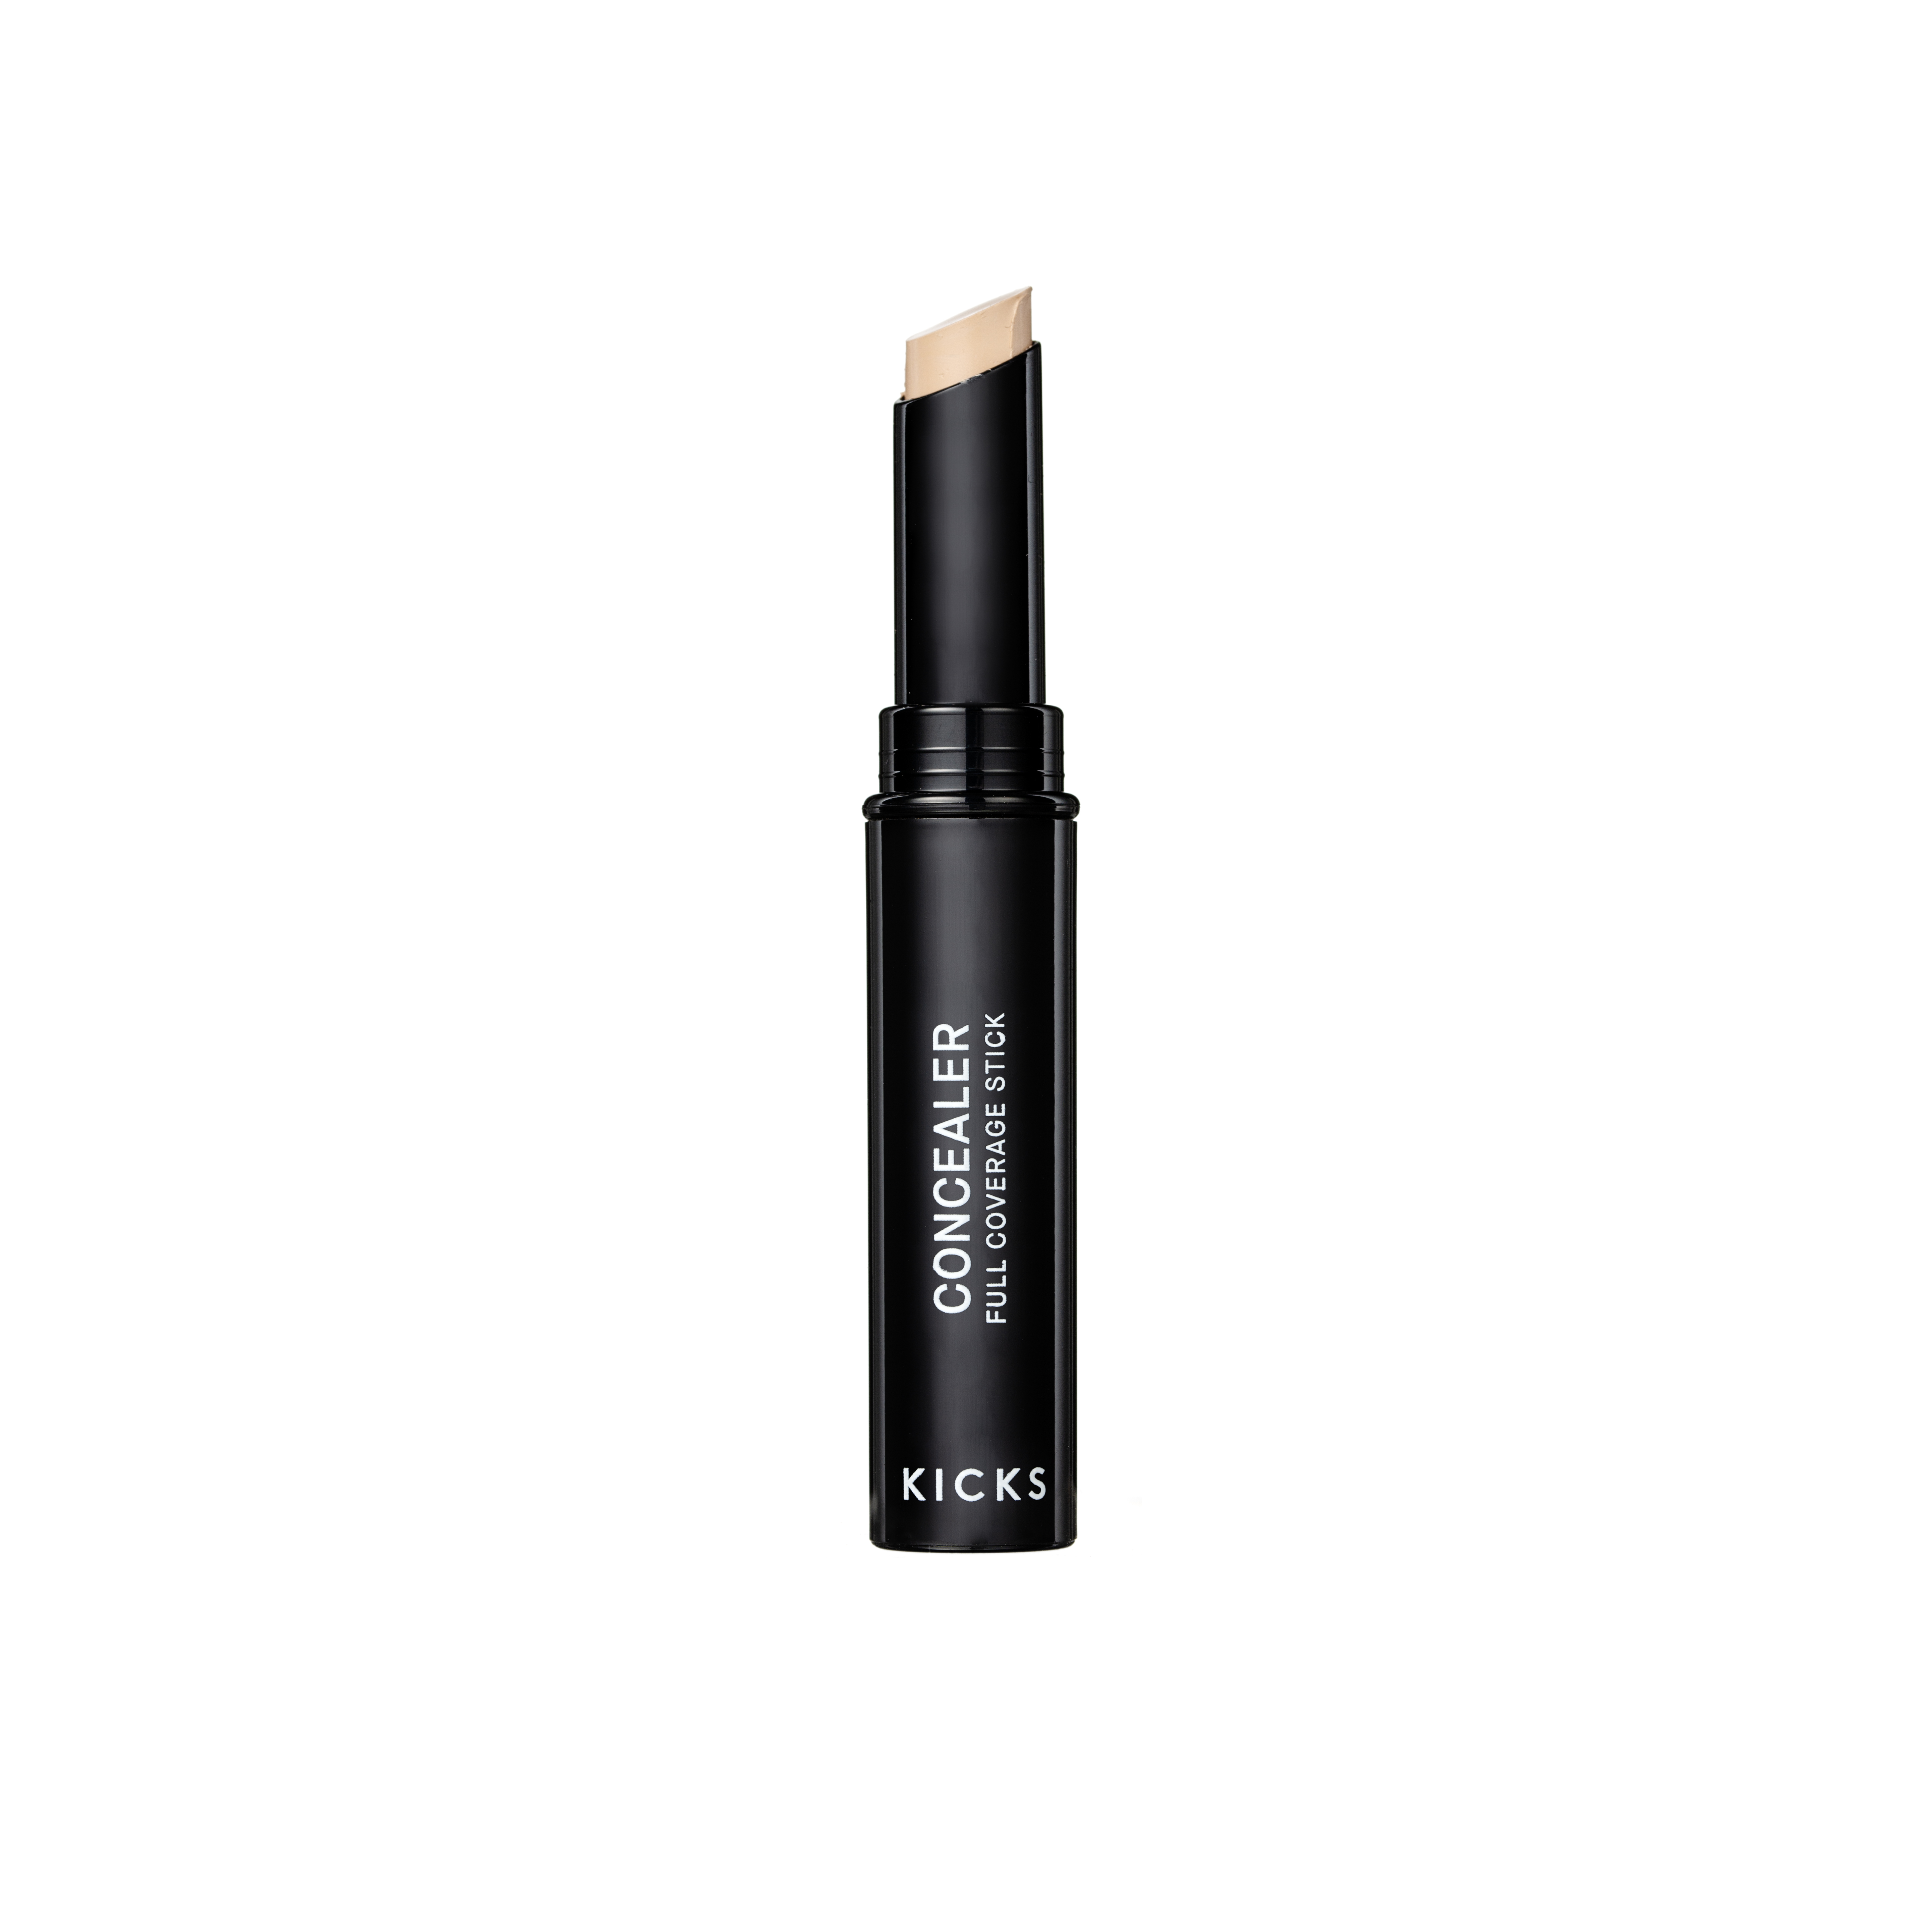 Lasting Full Coverage Concealer Stick 01